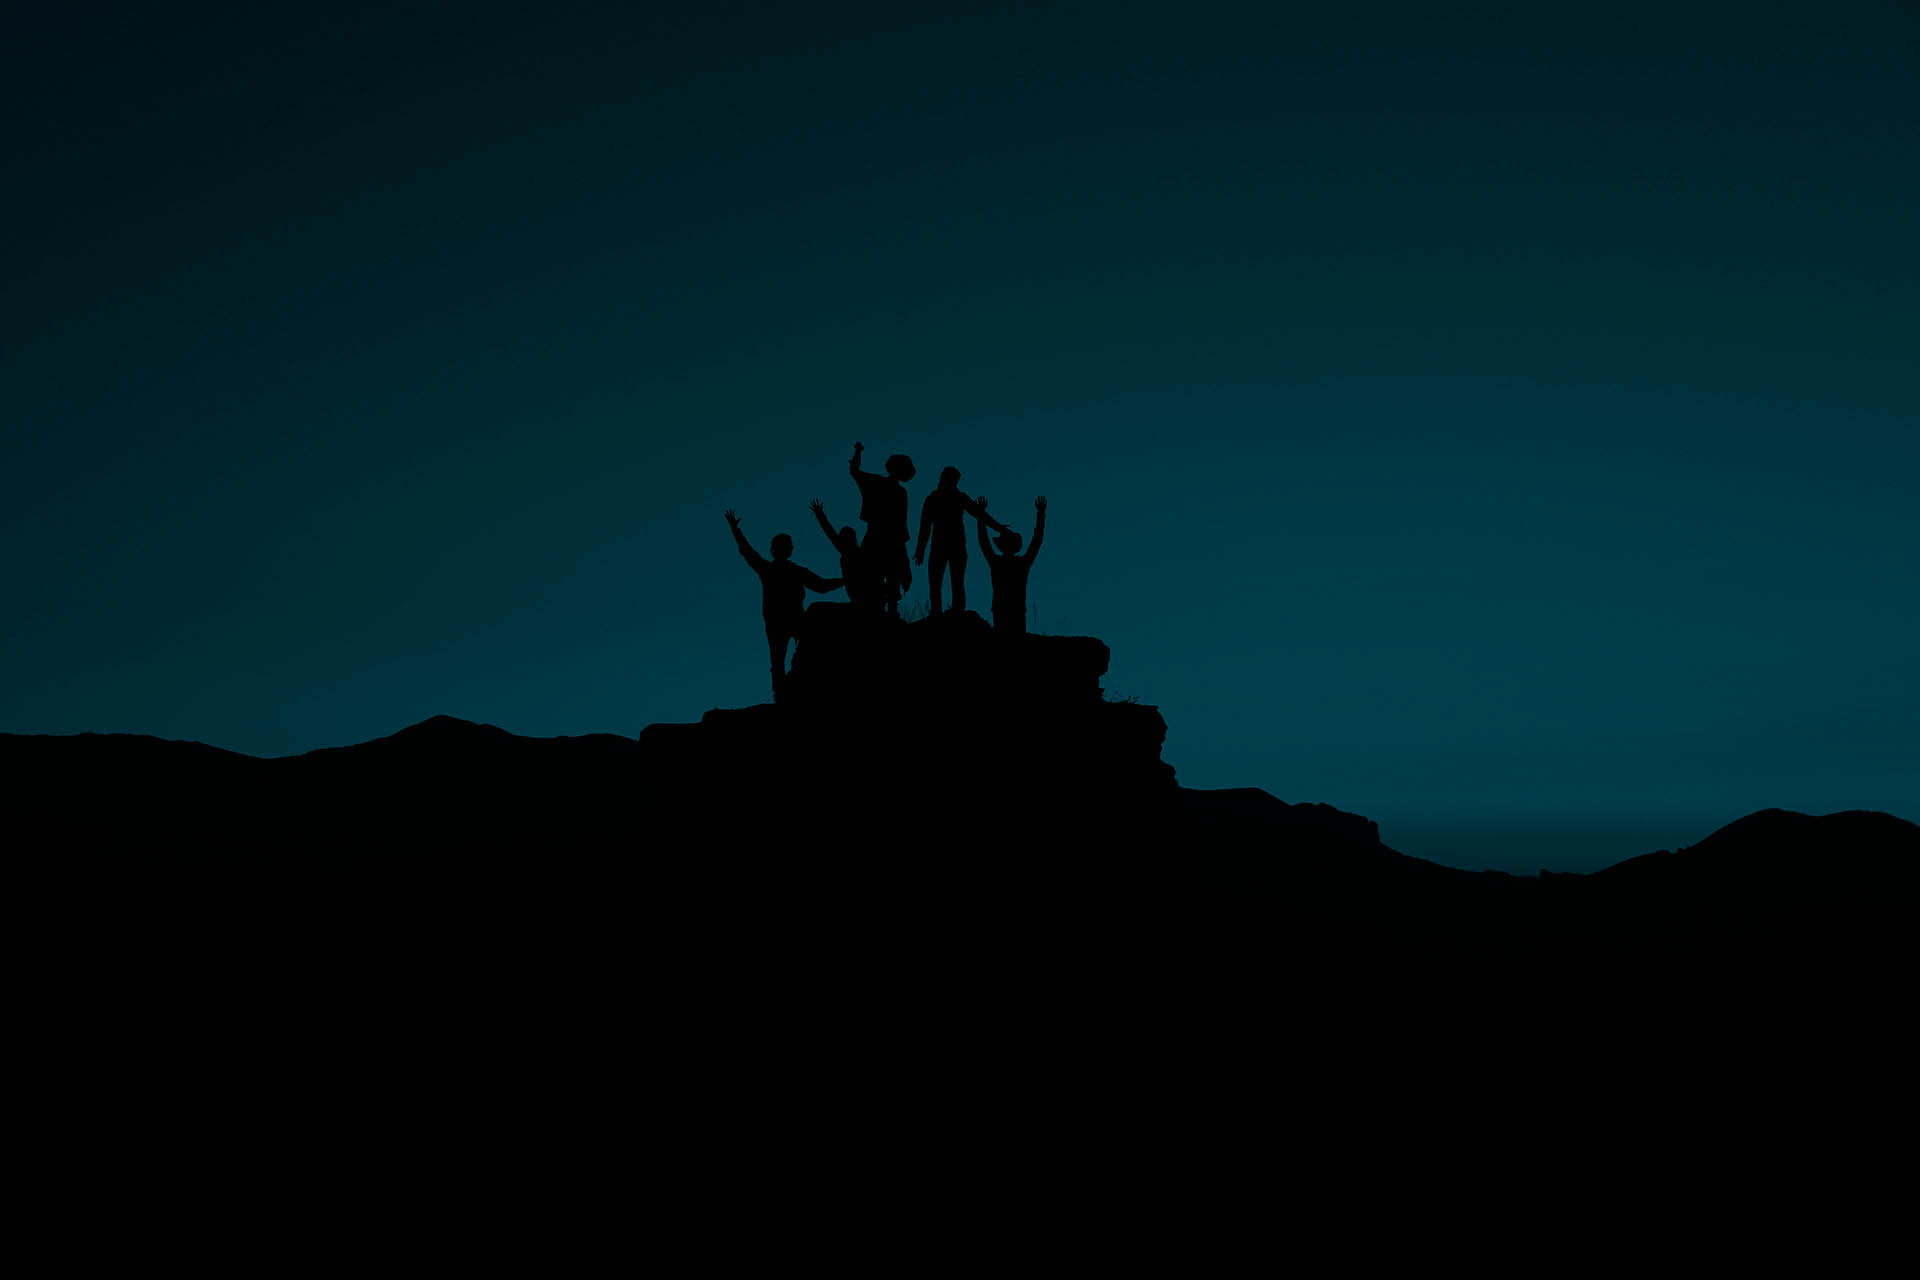 A group of people standing on a hill, that look like they are celebrating.